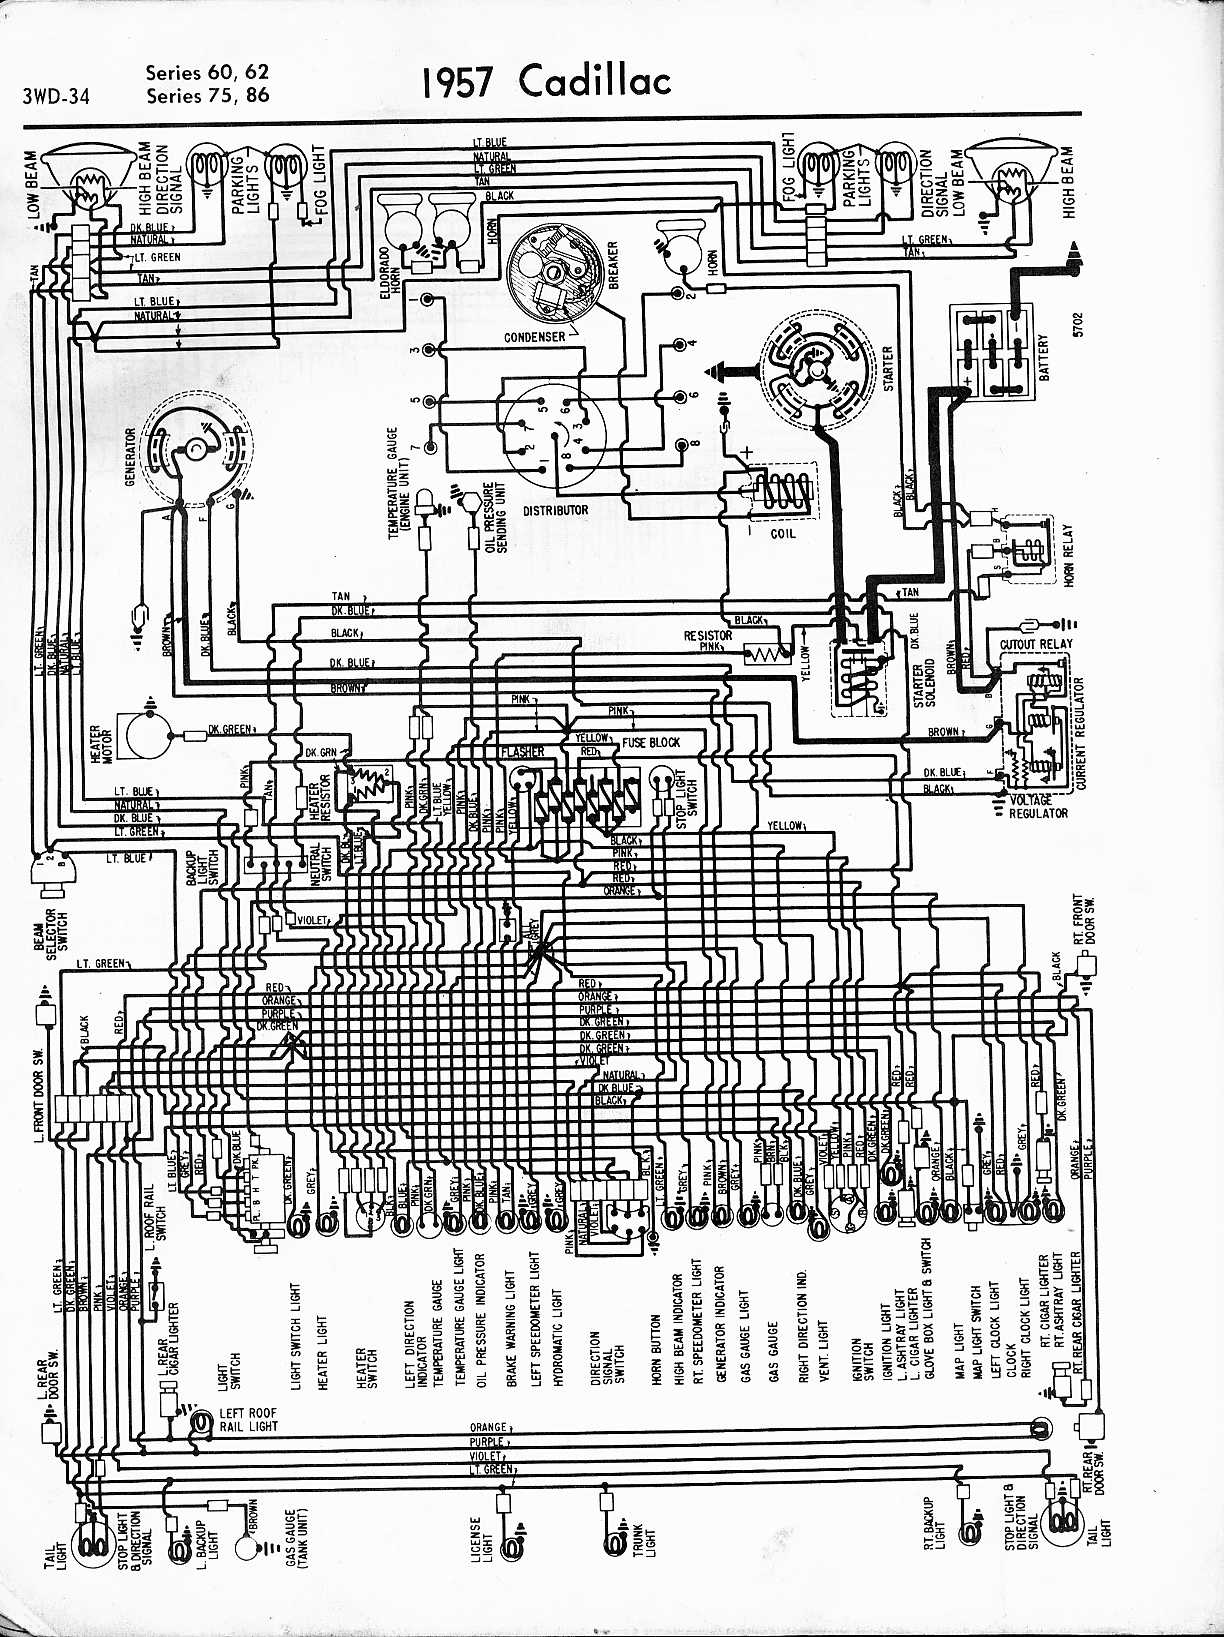 1999 Cadillac Wiring Diagram Harness 1990 Deville Diagrams 1957 1965 Jeep